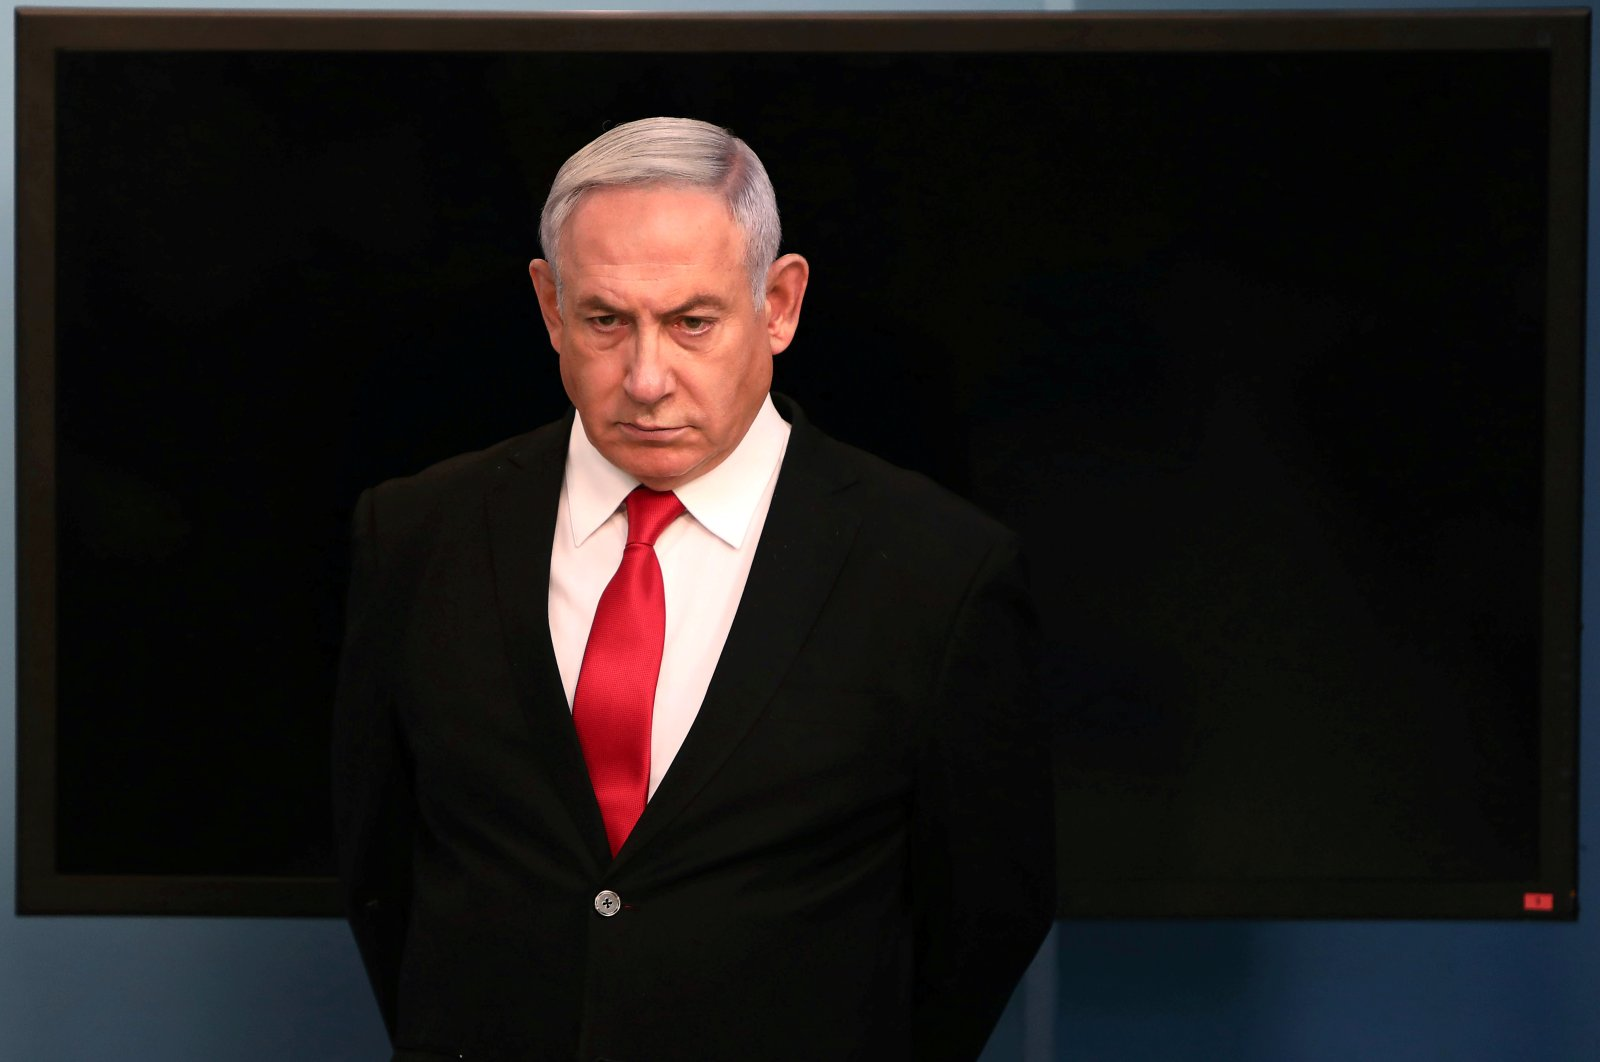 Israeli Prime Minister Benjamin Netanyahu arrives for a speech at his Jerusalem office, March 14, 2020. (REUTERS Photo)